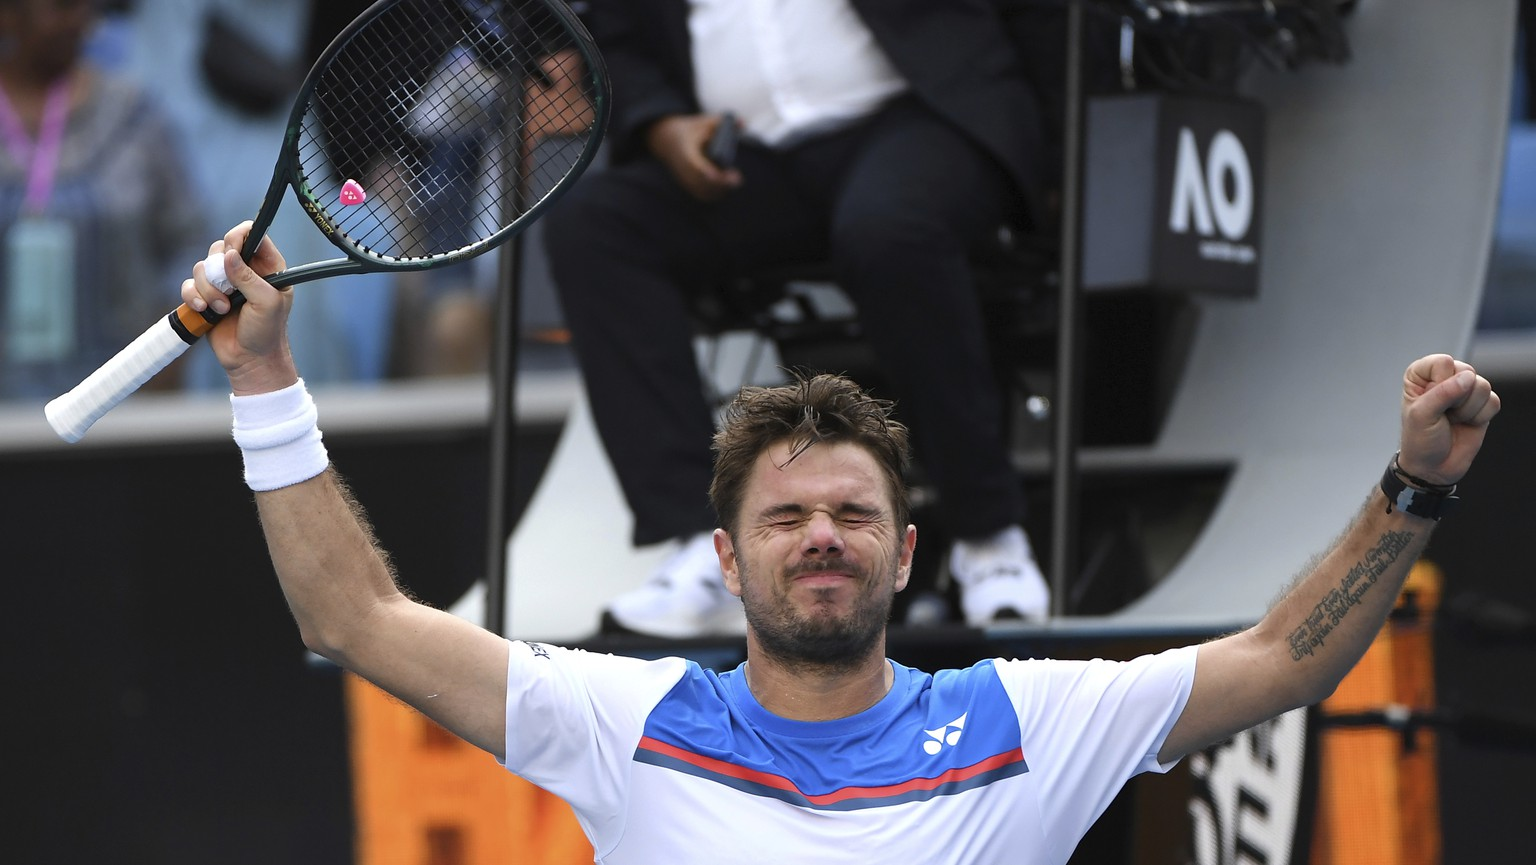 Switzerland's Stan Wawrinka celebrates after defeating Russia's Daniil Medvedev in their fourth round singles match at the Australian Open tennis championship in Melbourne, Australia, Monday, Jan. 27, 2020. (AP Photo/Andy Brownbill) Stan Wawrinka